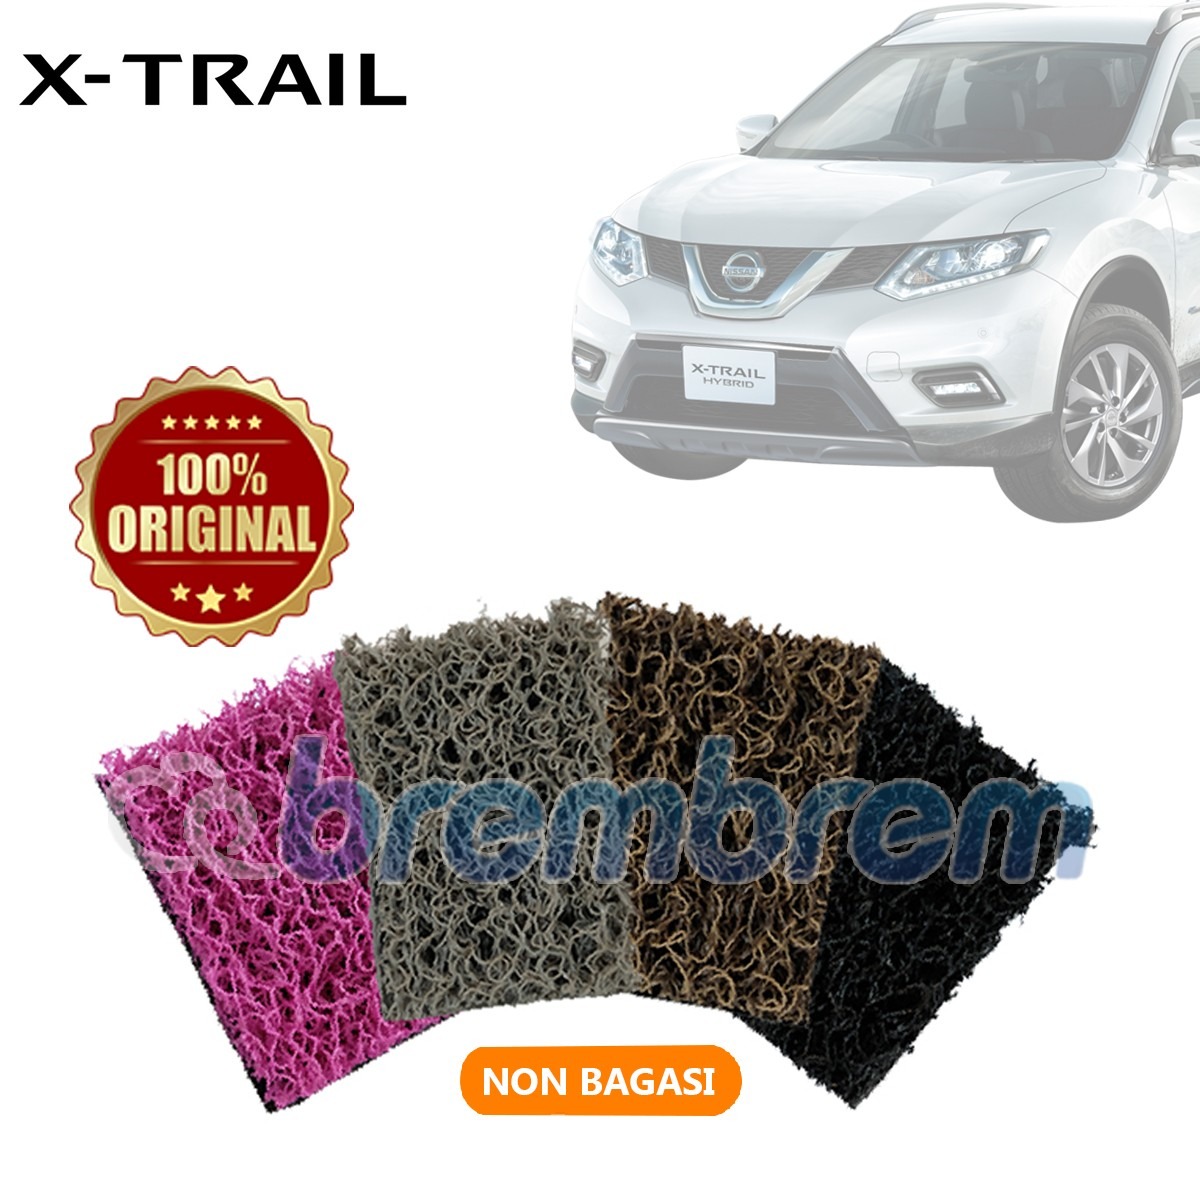 KARPET COMFORT PREMIUM NON BAGASI NISSAN ALL NEW X-TRAIL